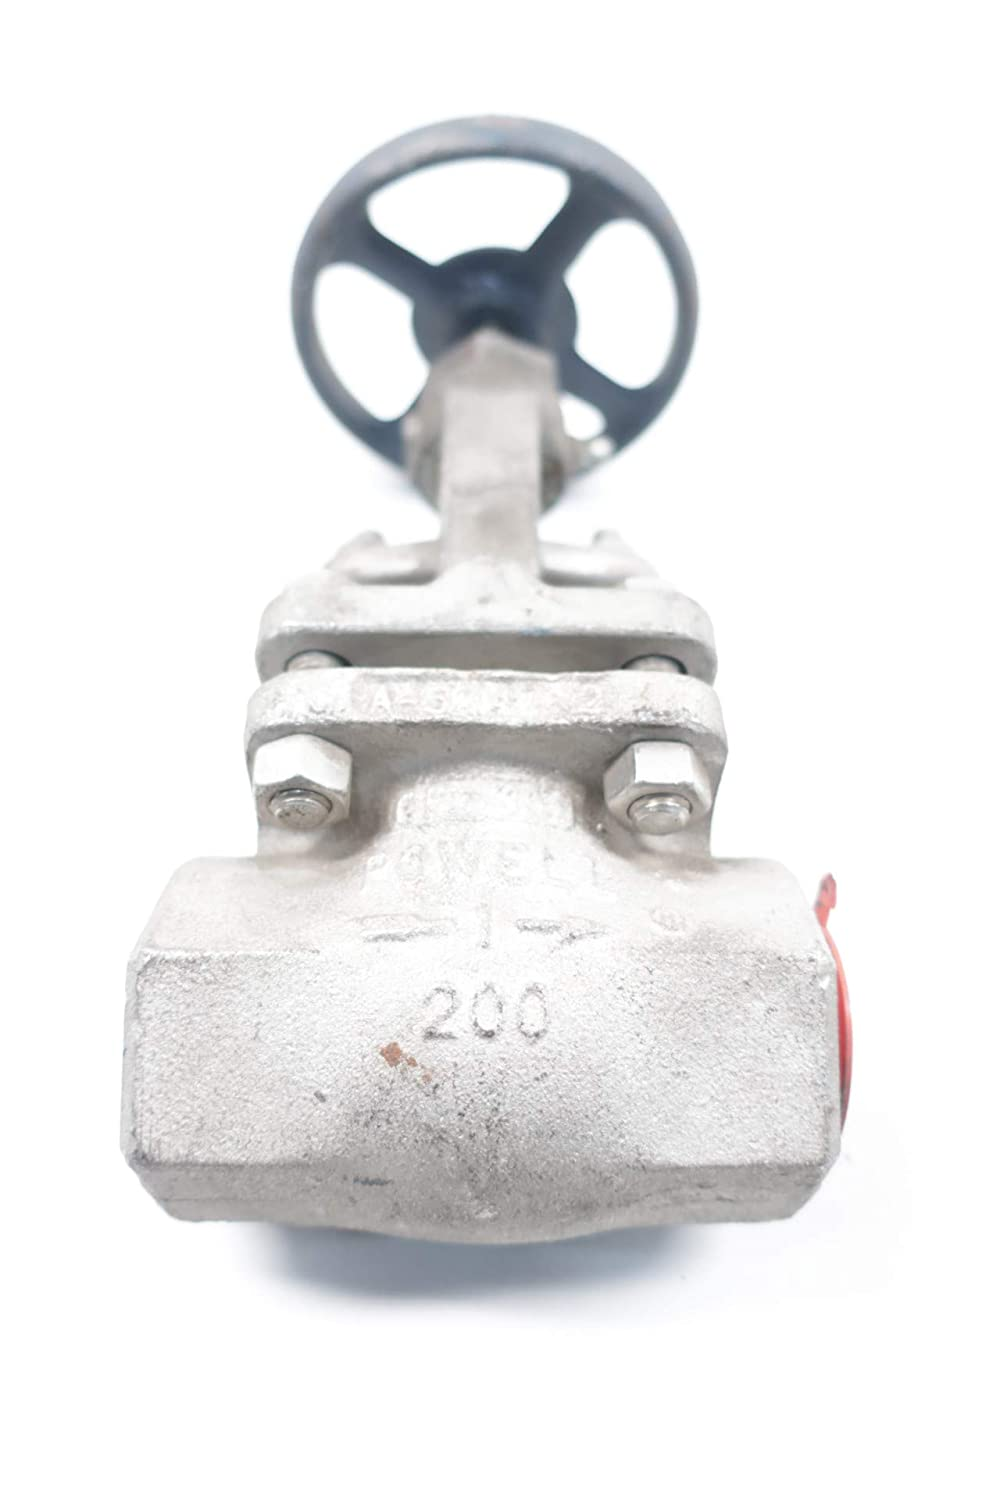 POWELL 2474 Manual 200 Stainless 1IN NPT Globe Valve D660753